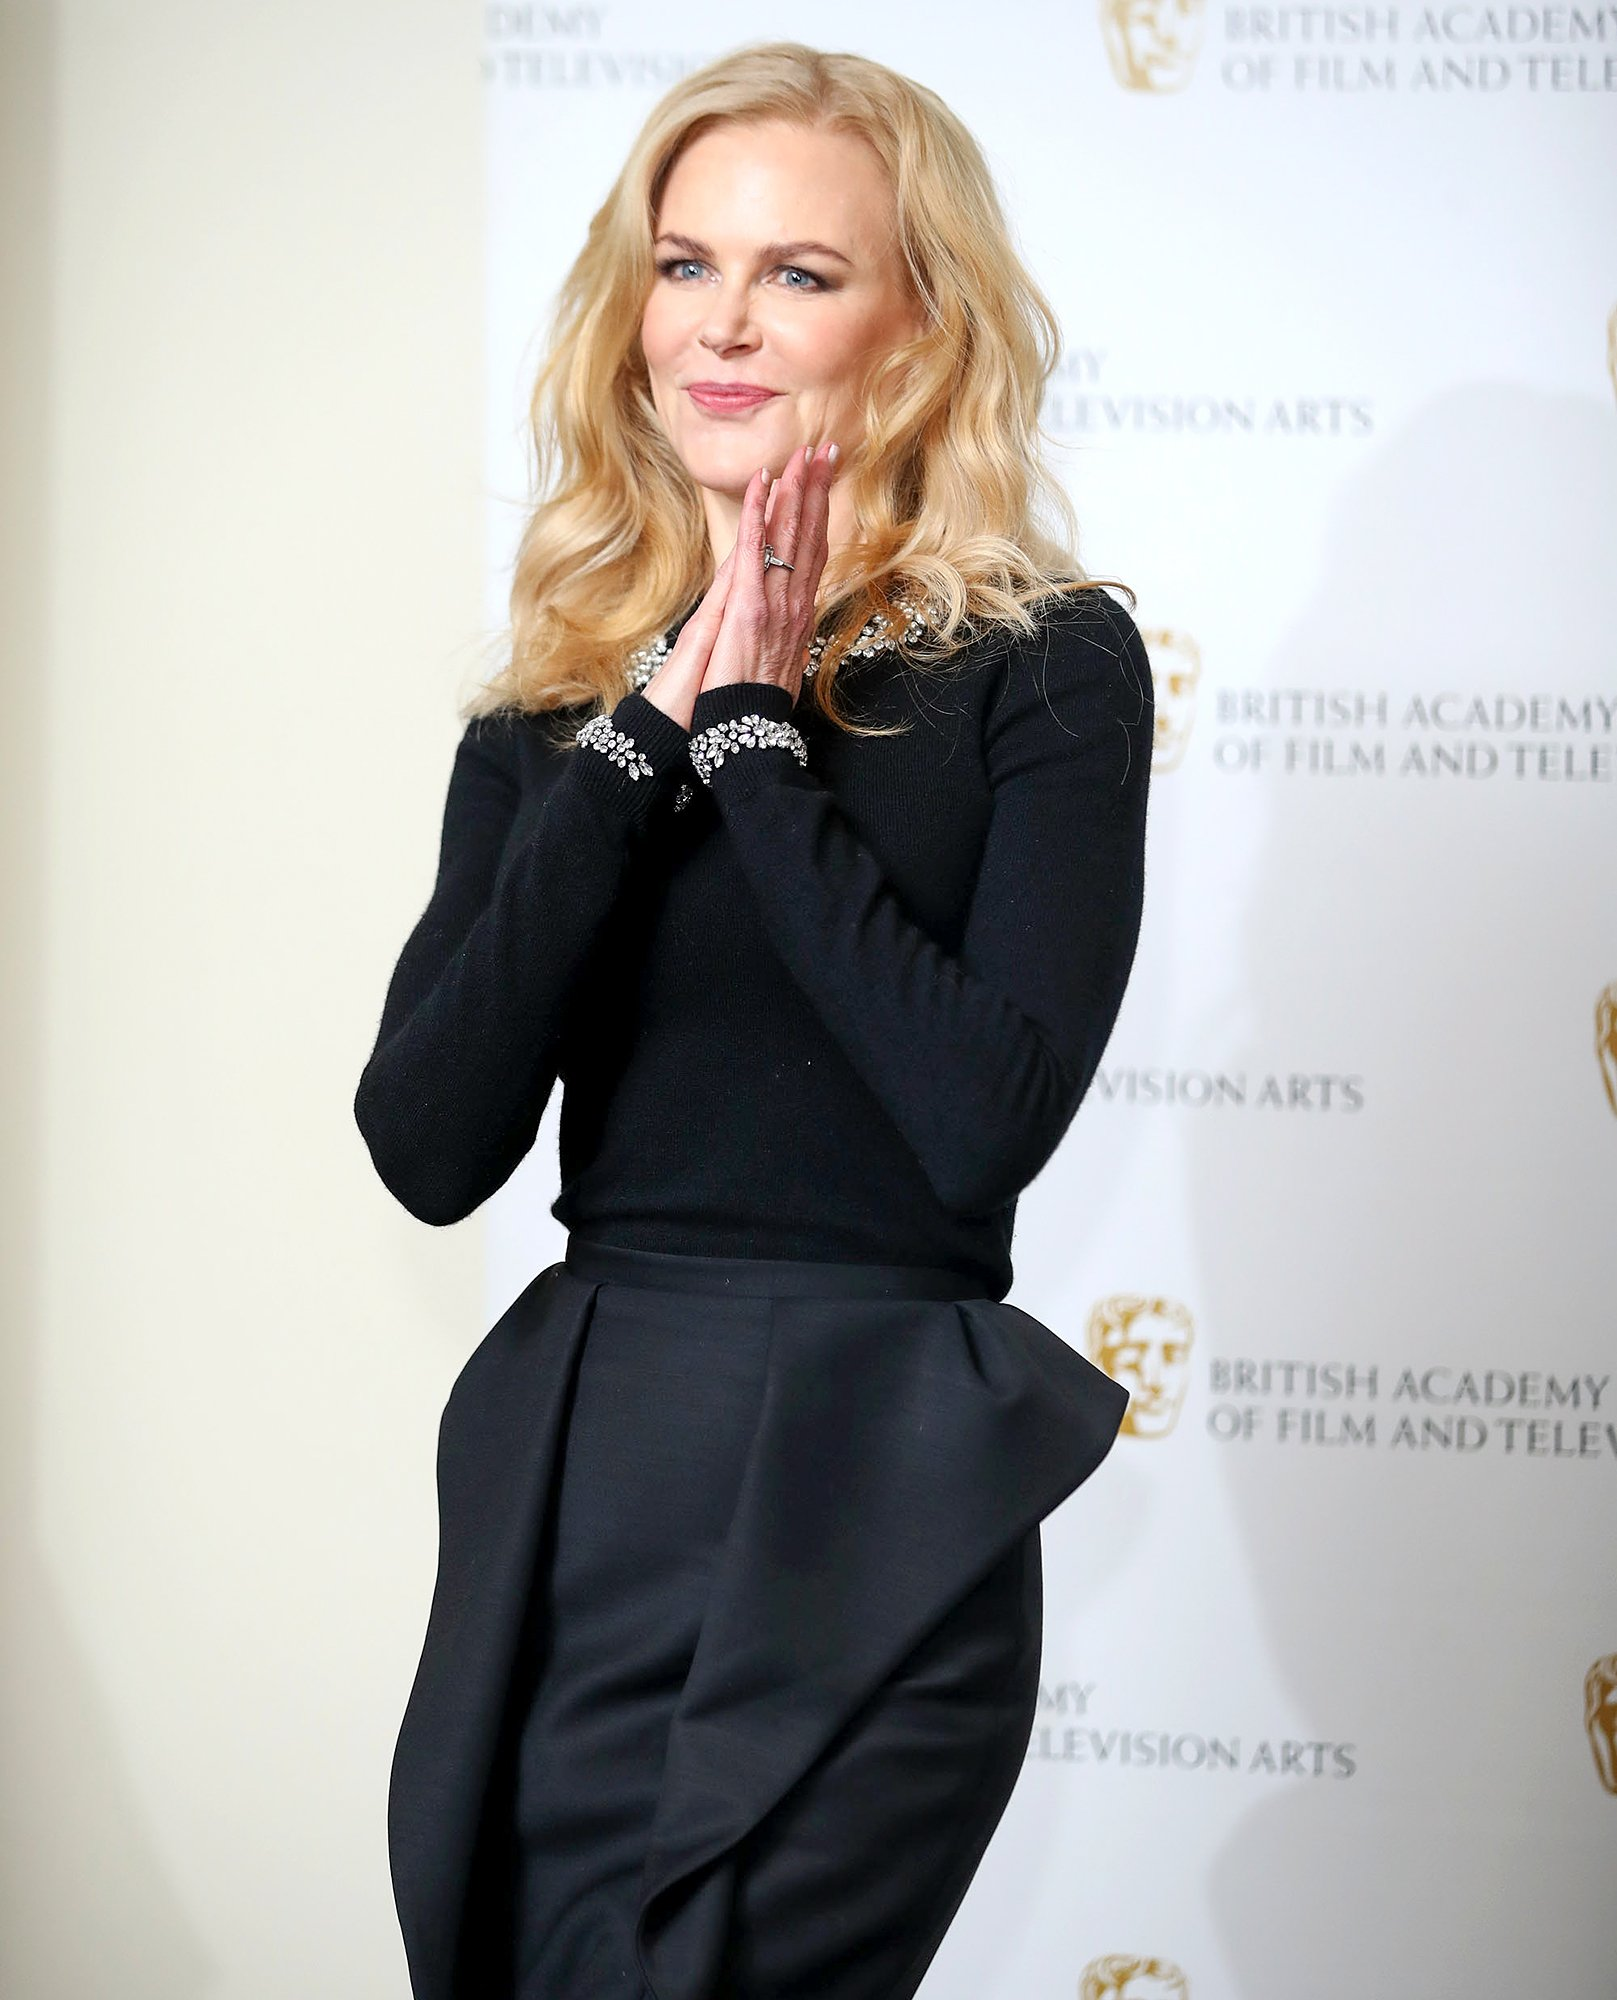 Nicole Kidman Reacts to Golden Globe Nomination for 'Crazy, Female-Driven' Destroyer